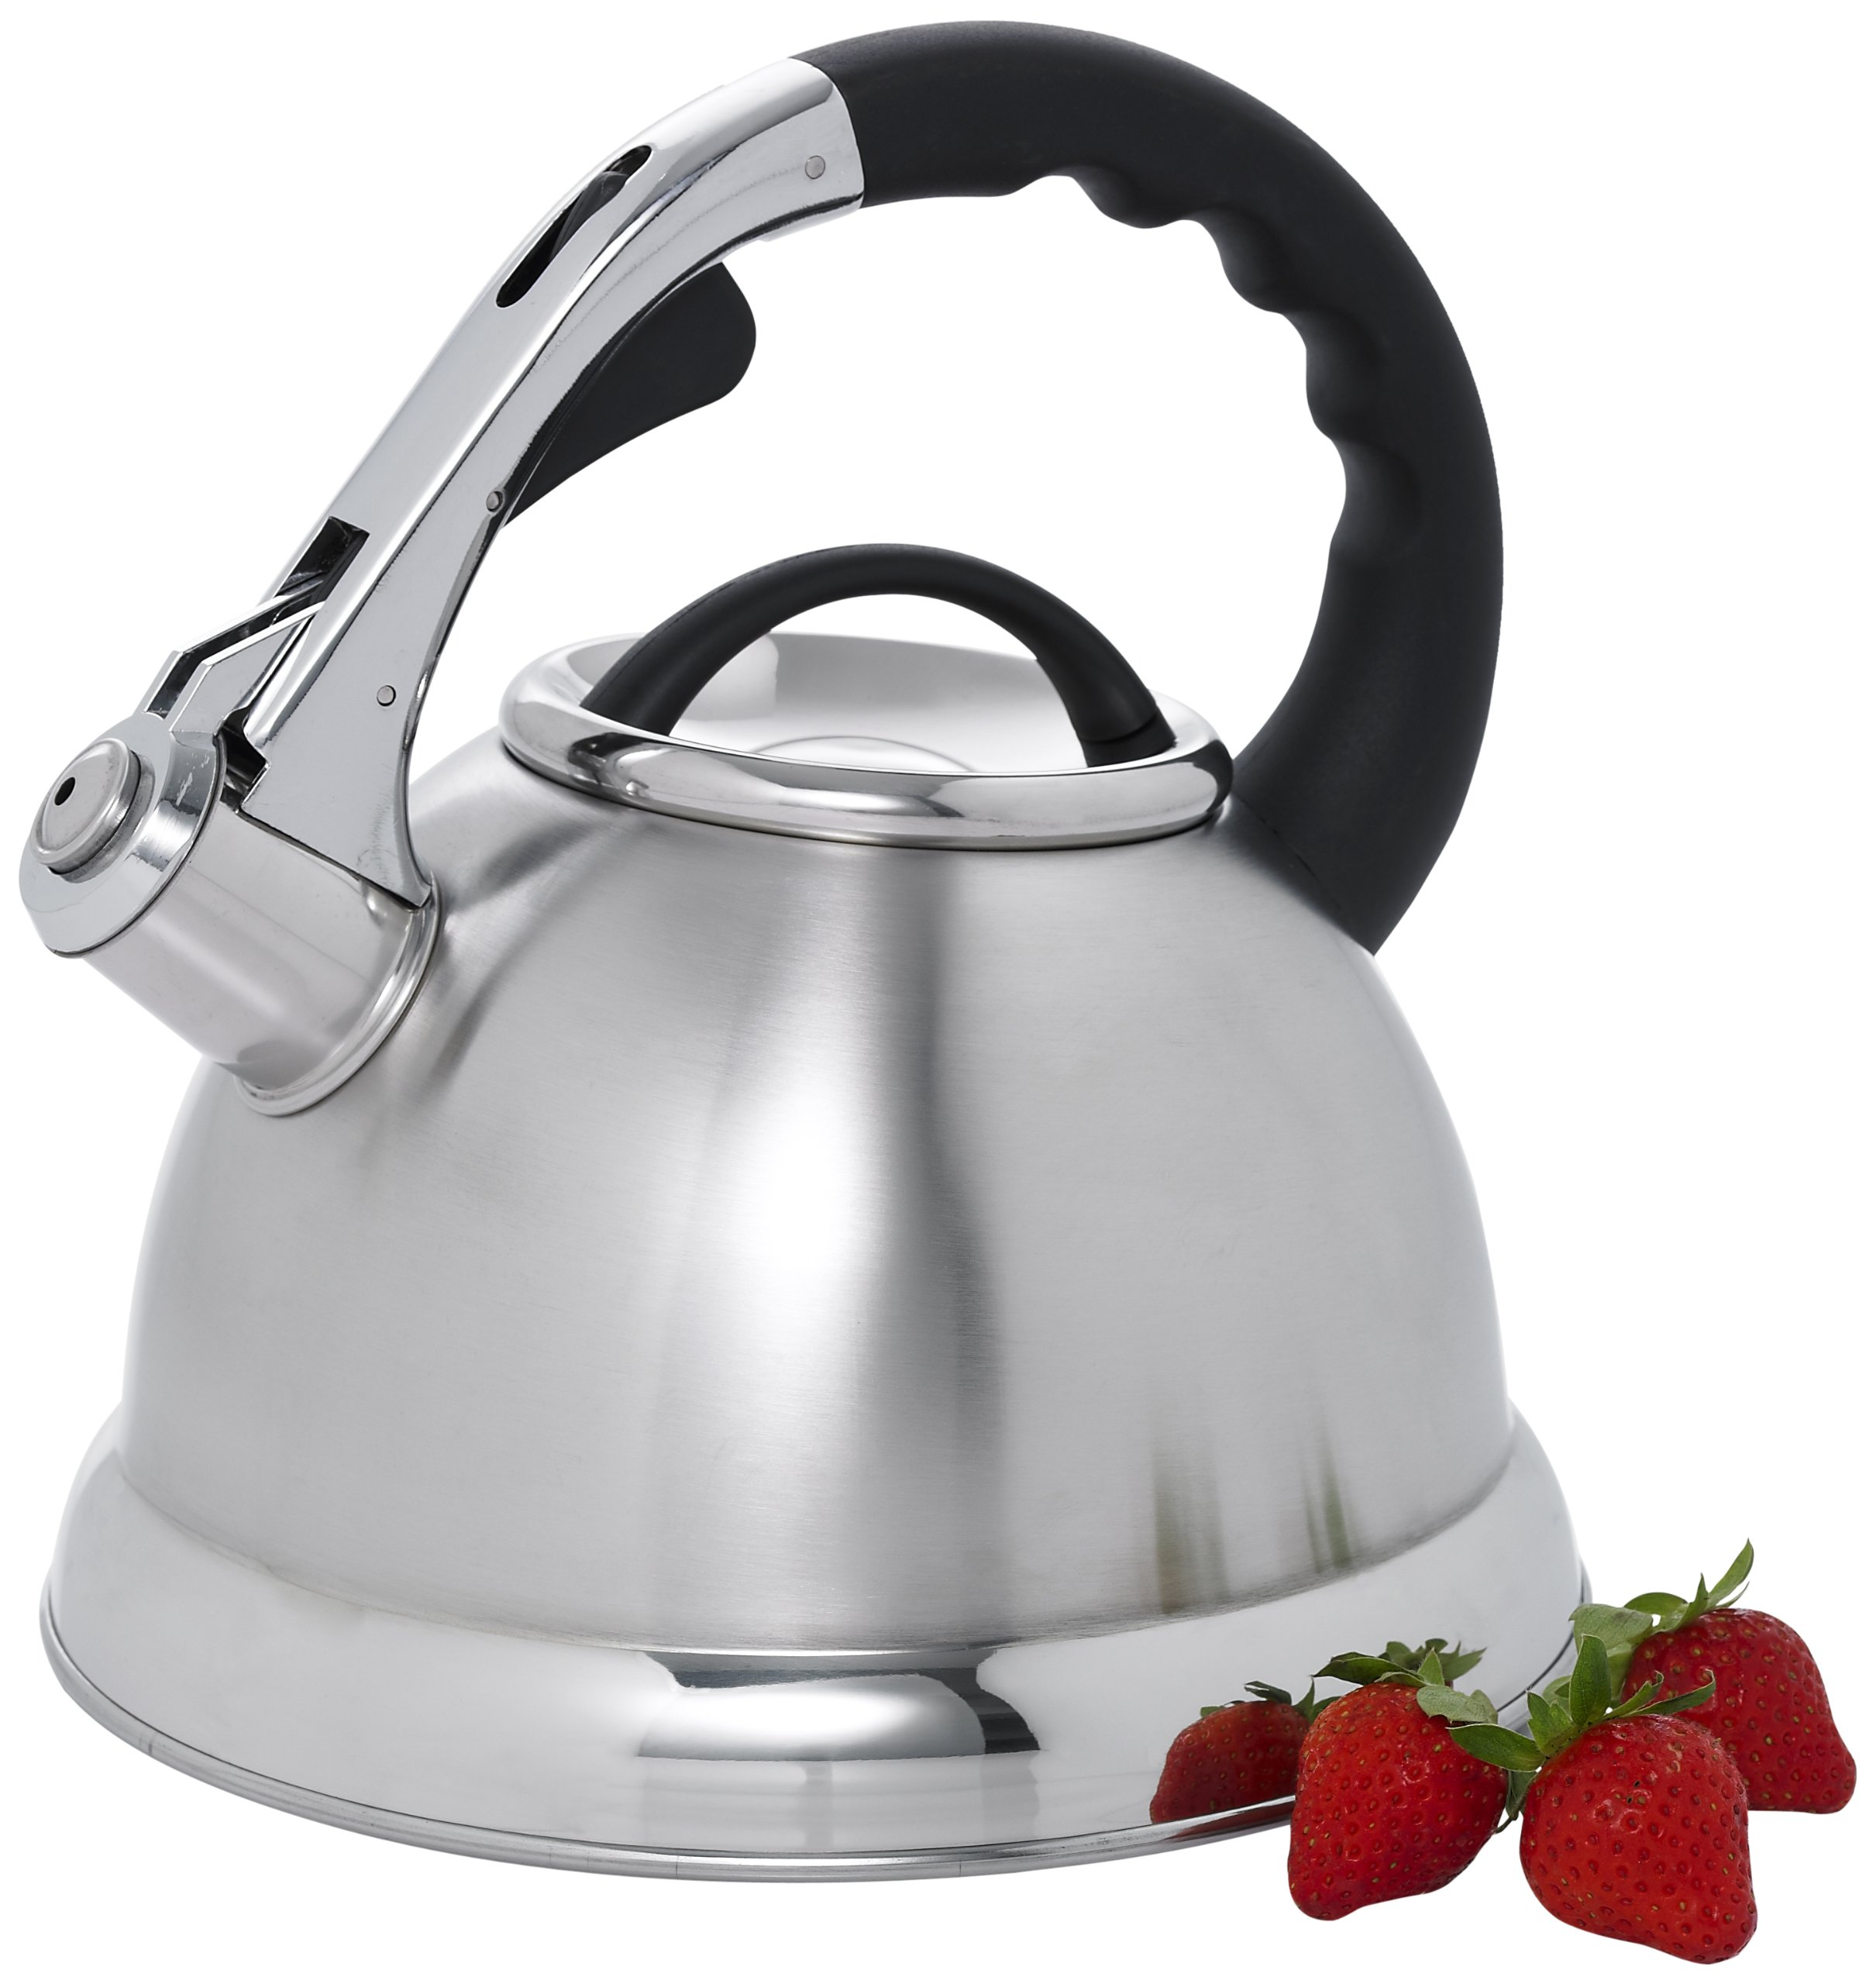 Creative Home 72223 Camille Stainless Steel Whistling Tea Kettle, 3-Quart